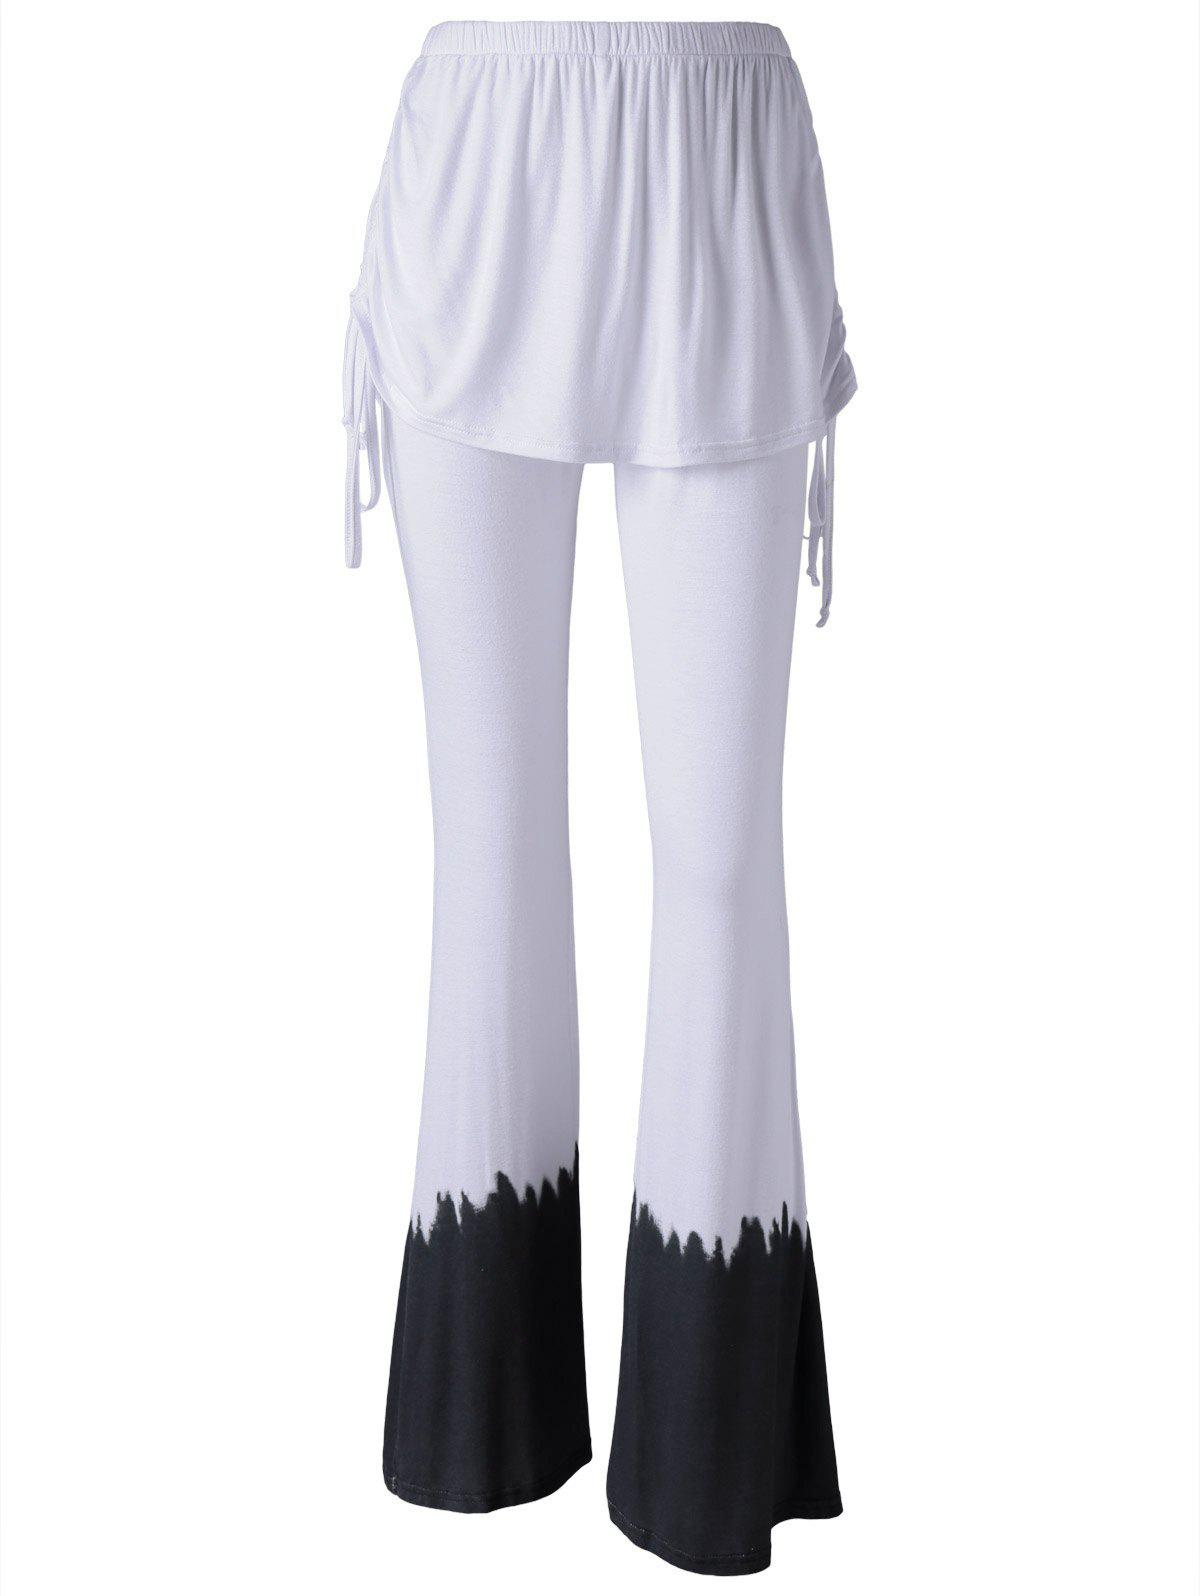 Leisure Tie-Dye Flared Faux Twinset Pants For Women - WHITE L